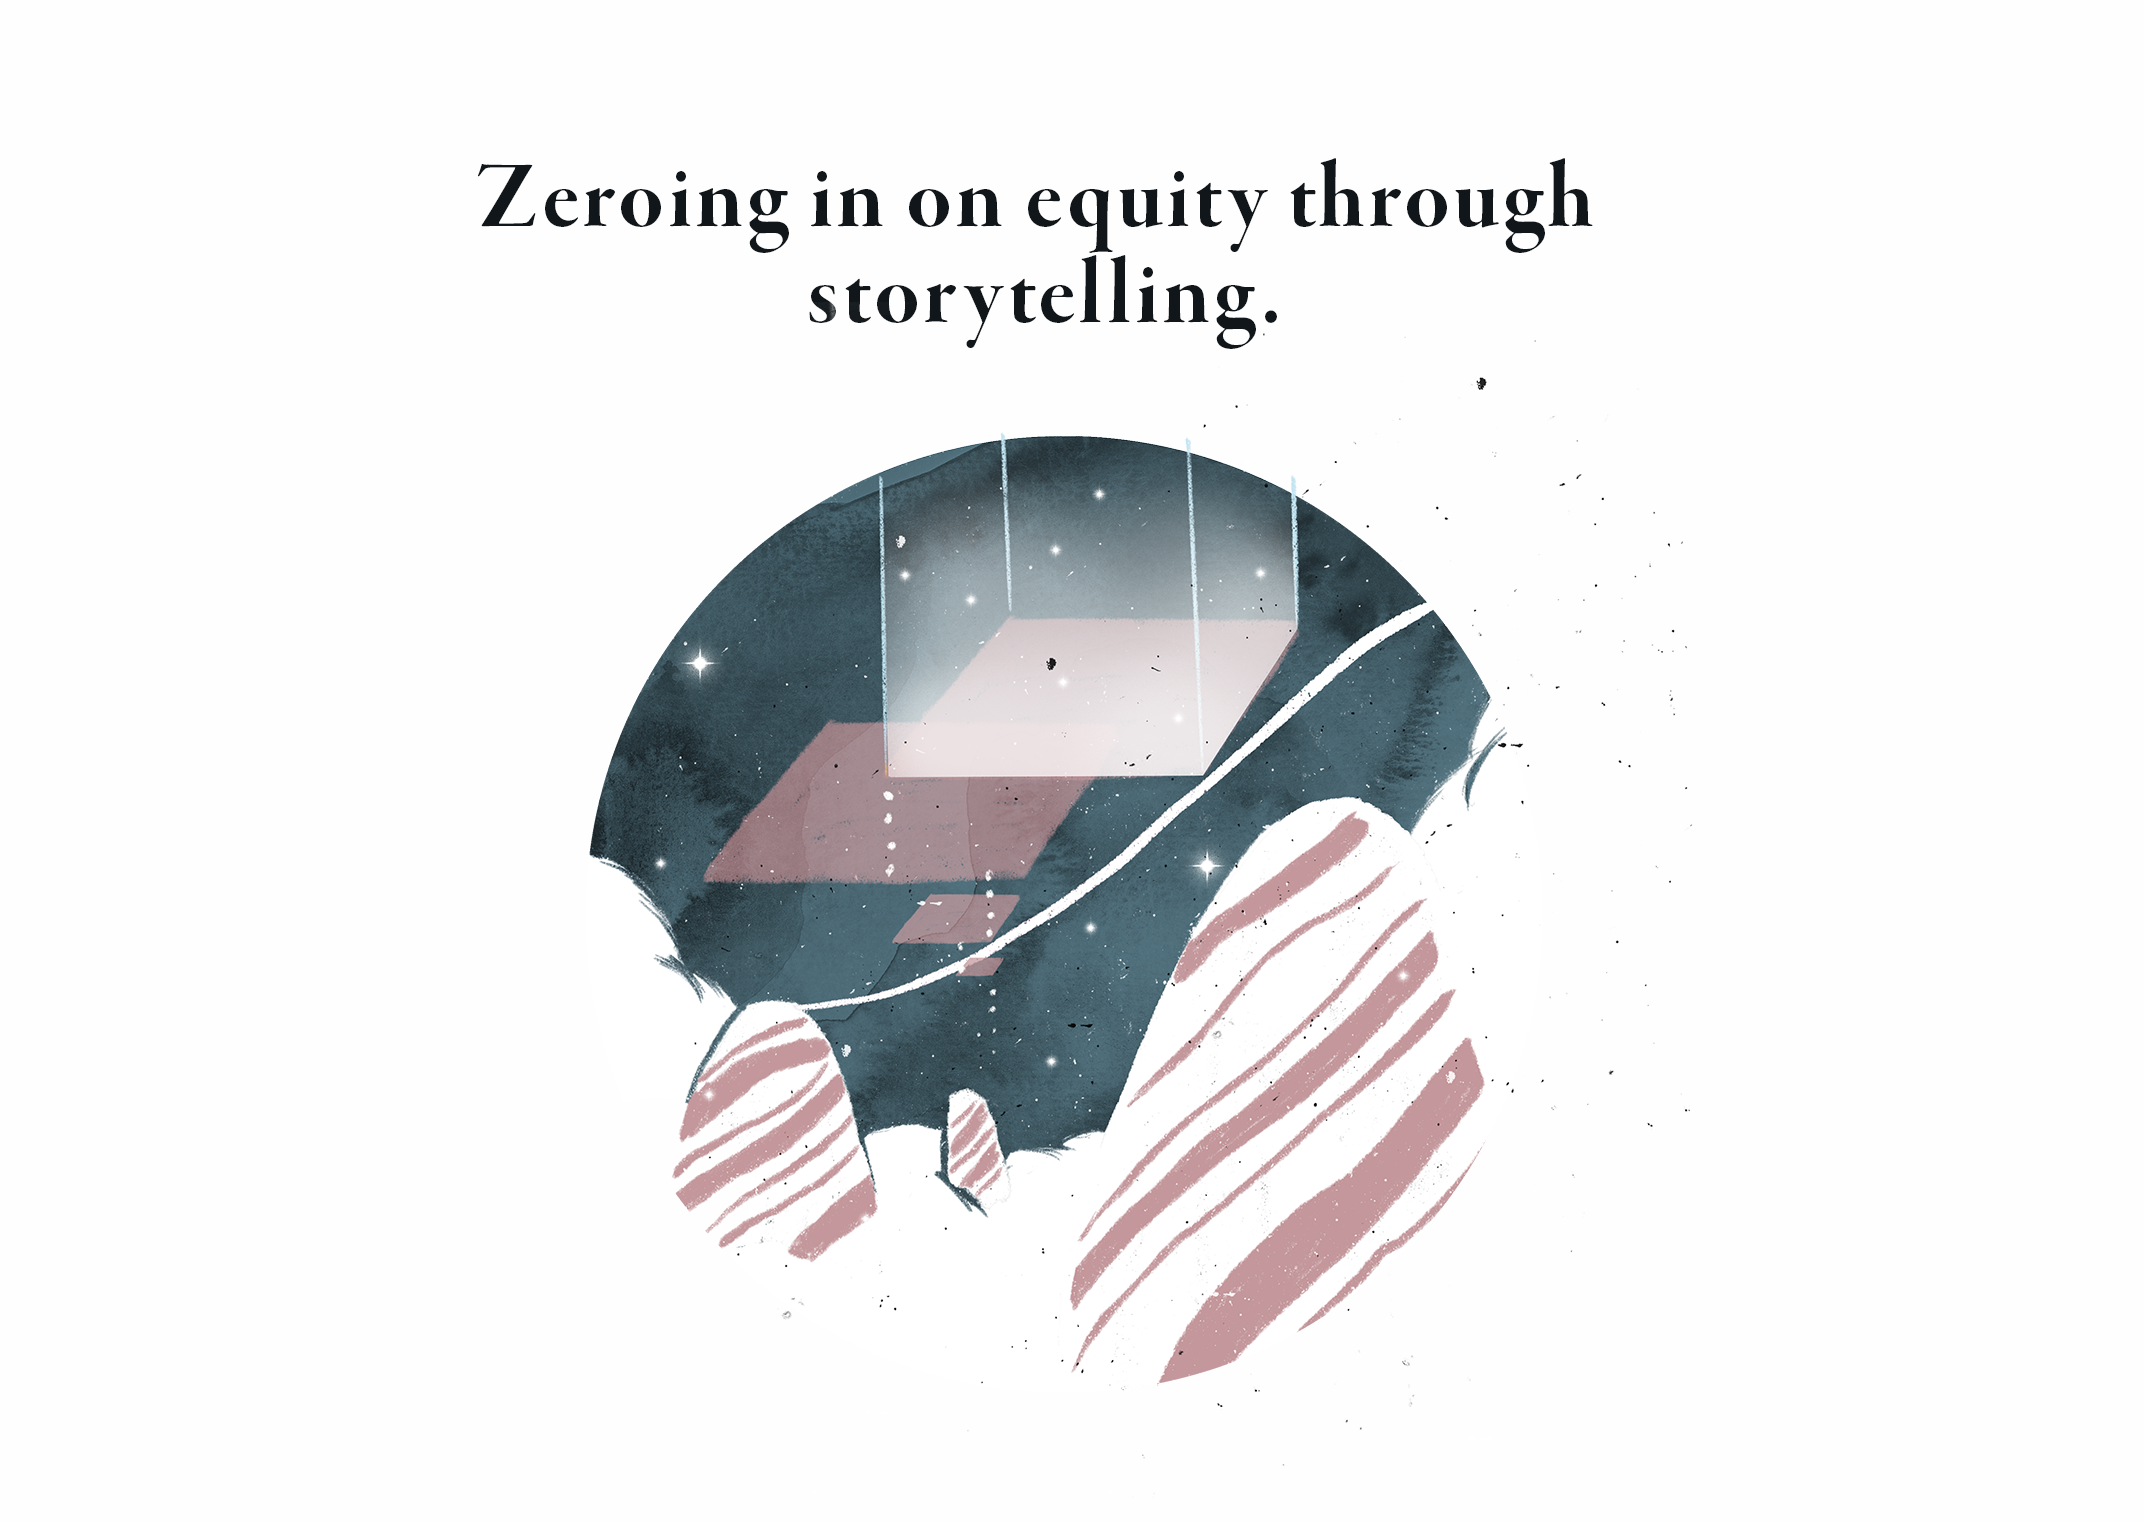 Zeroing in on equity through storytelling